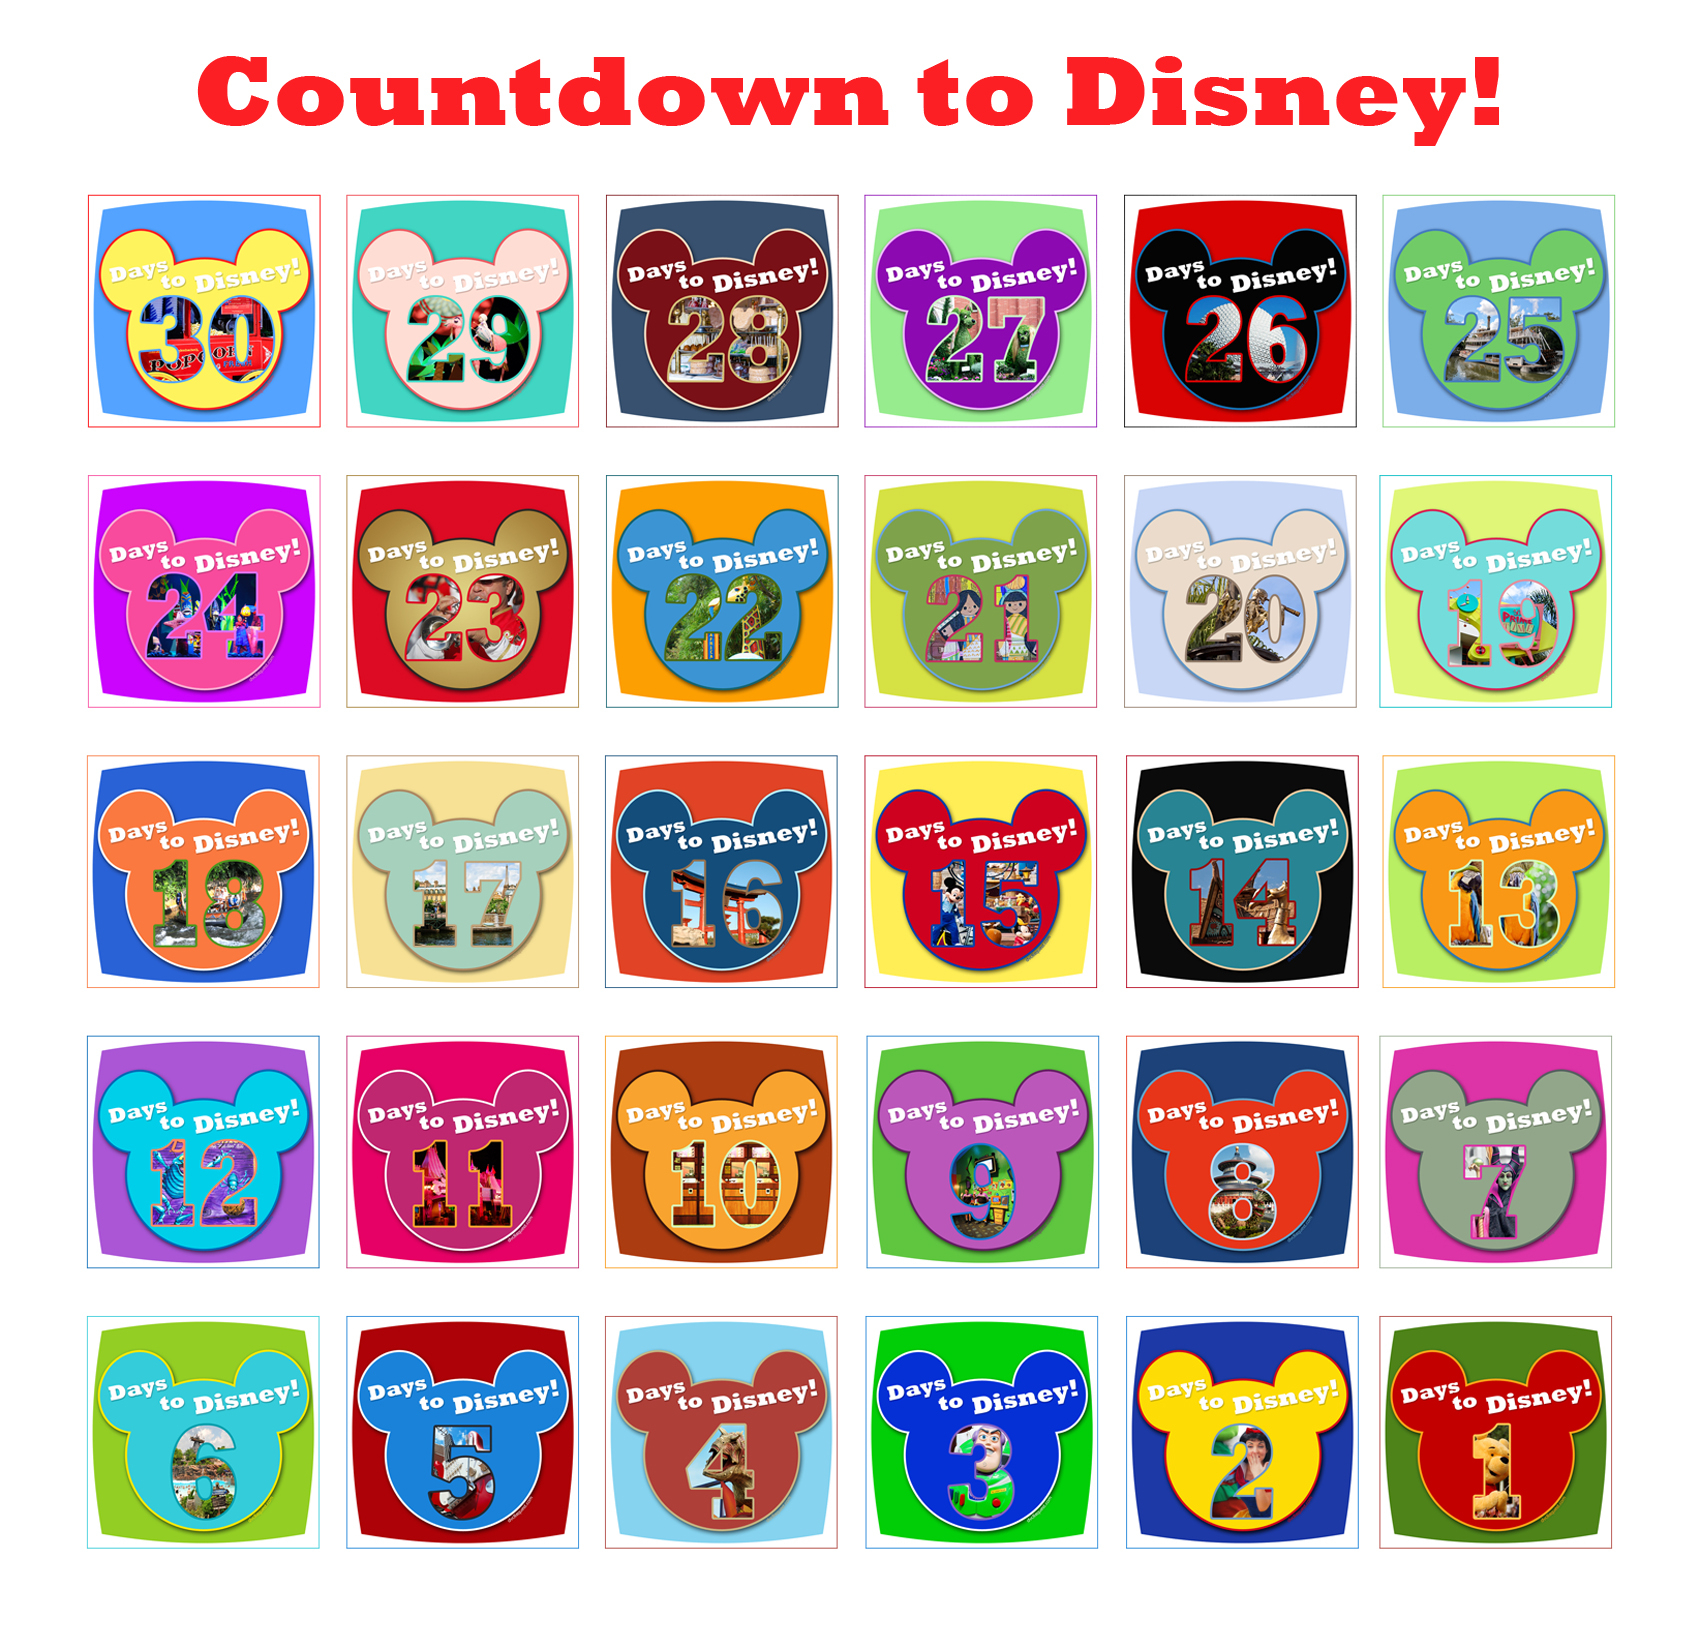 Countdown Calendar Grid  The Official Blog Of David's in Disney Countdown Calendar Printable